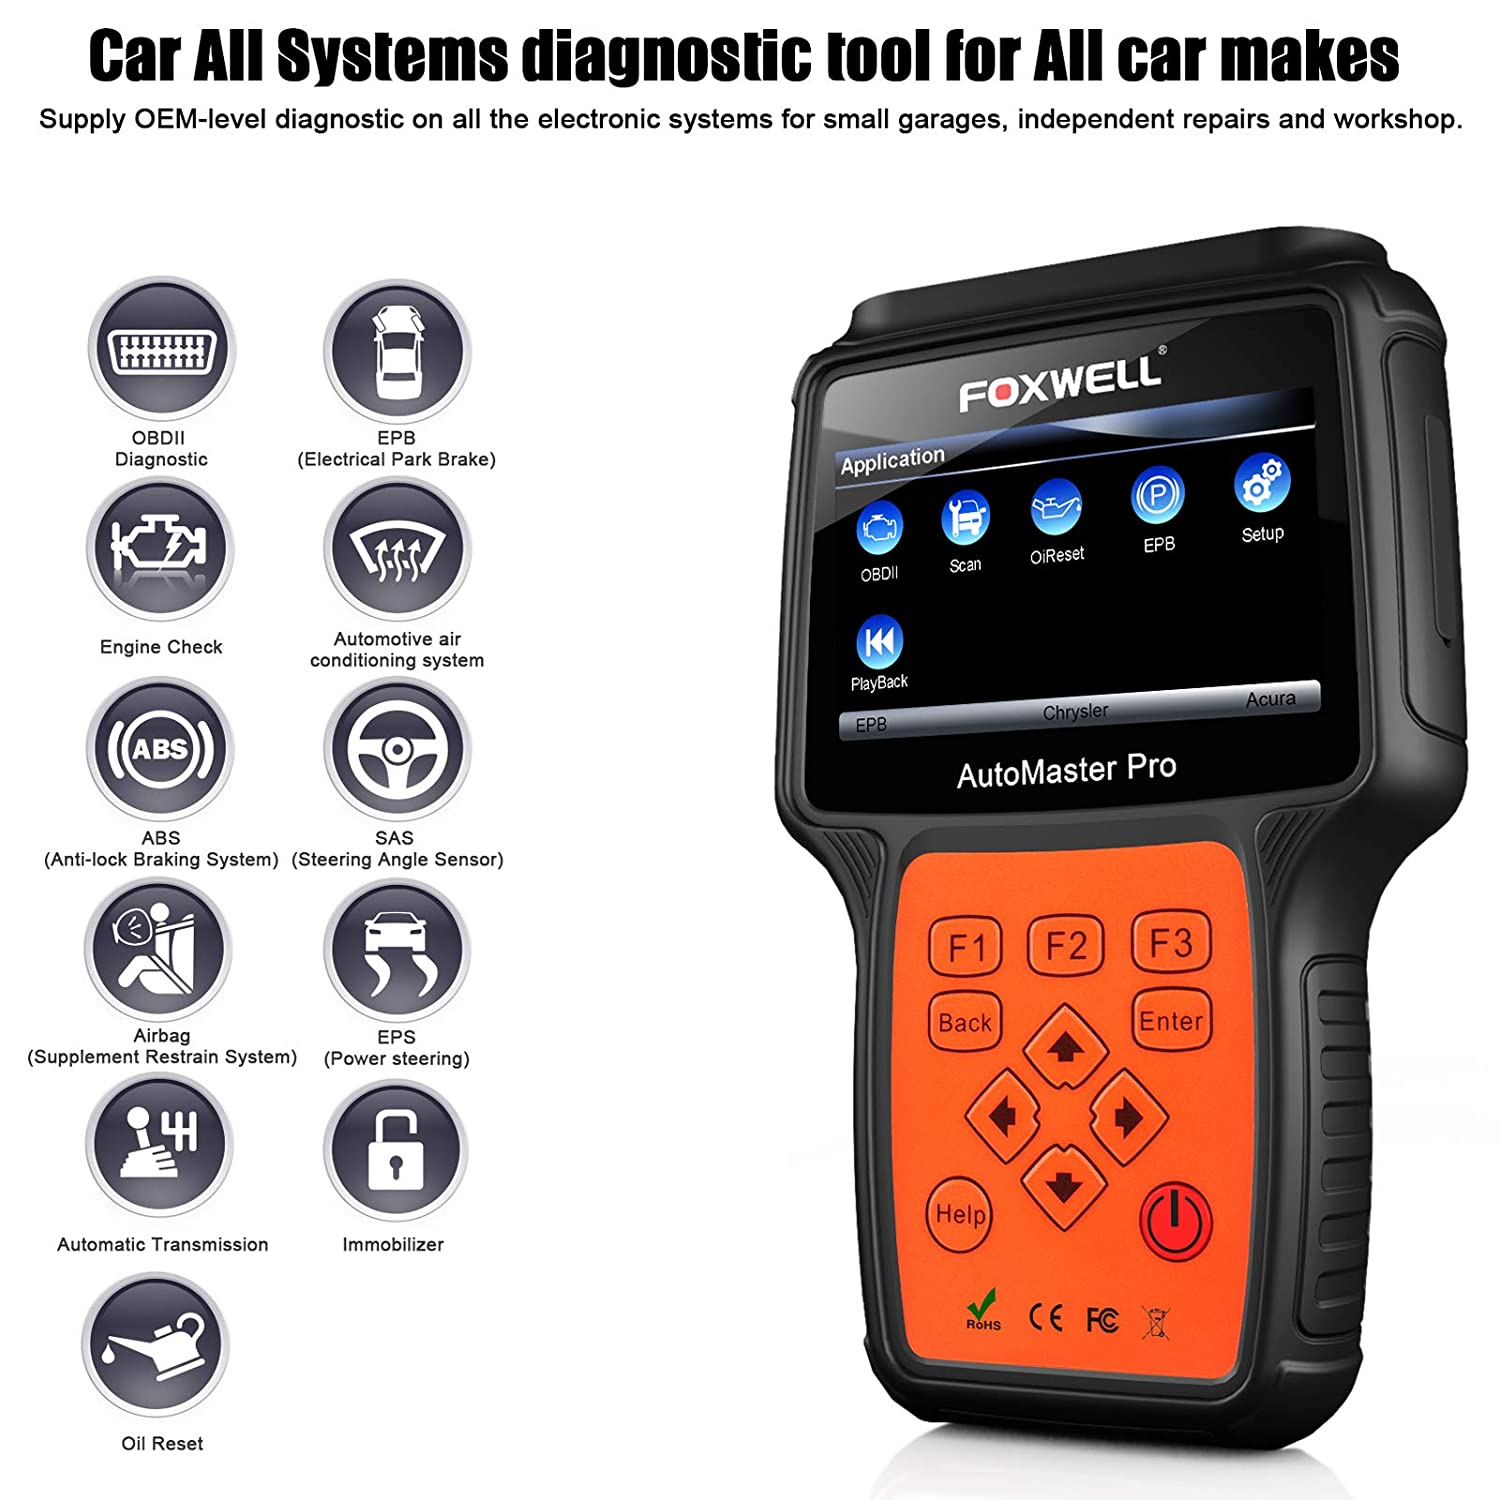 Foxwell Nt624 Pro Professional Automotive Obd2 Scanner Charging System Wiring Diagram 2002 Jeep Liberty Sport Obdii Code Reader Car All Systems Diagnostic Scan Tool With Abs Oil Light Reset And Epb